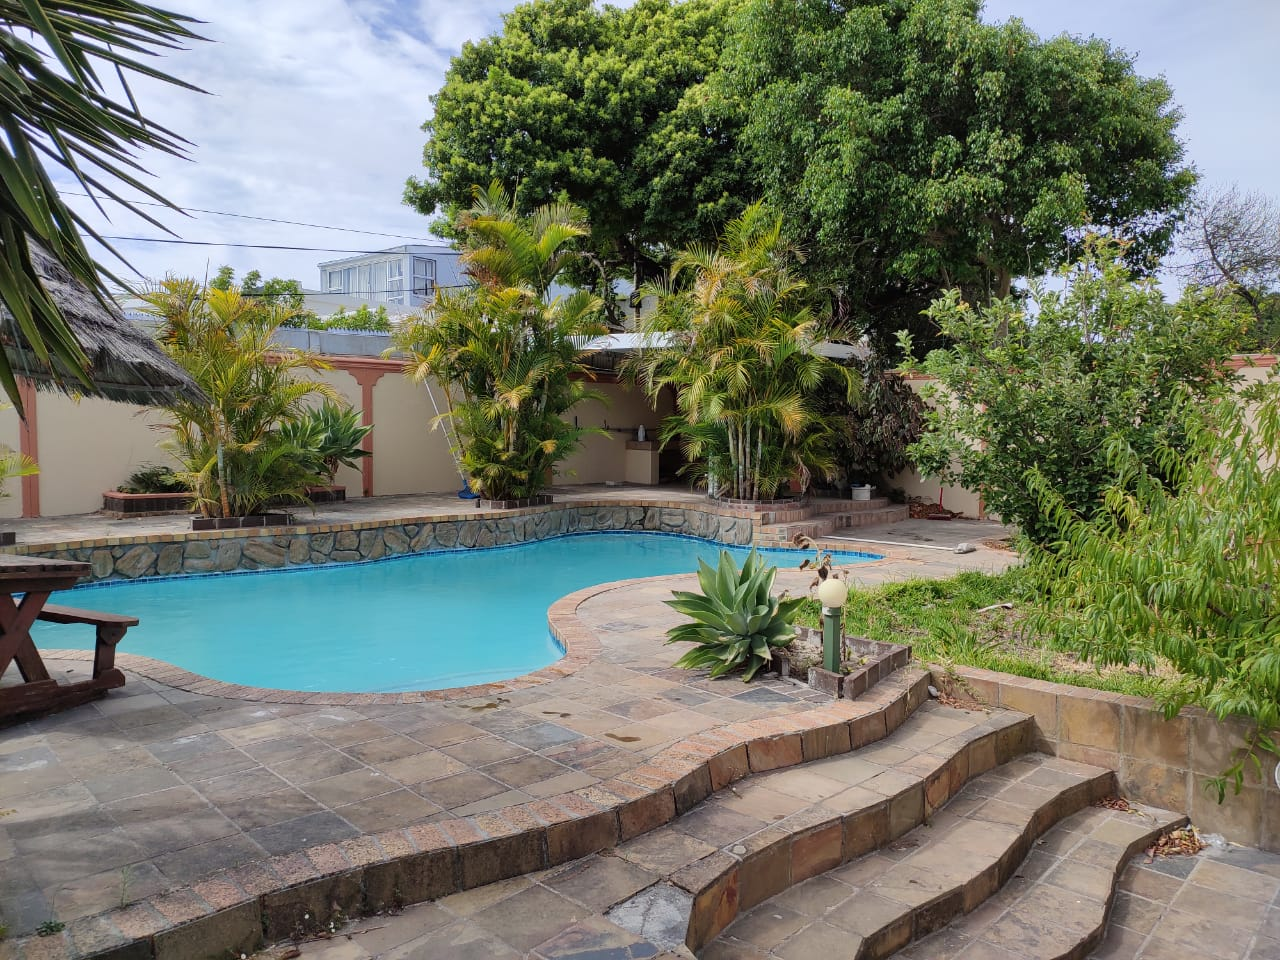 3 bedroom house with swimming Pool – R2.6 million